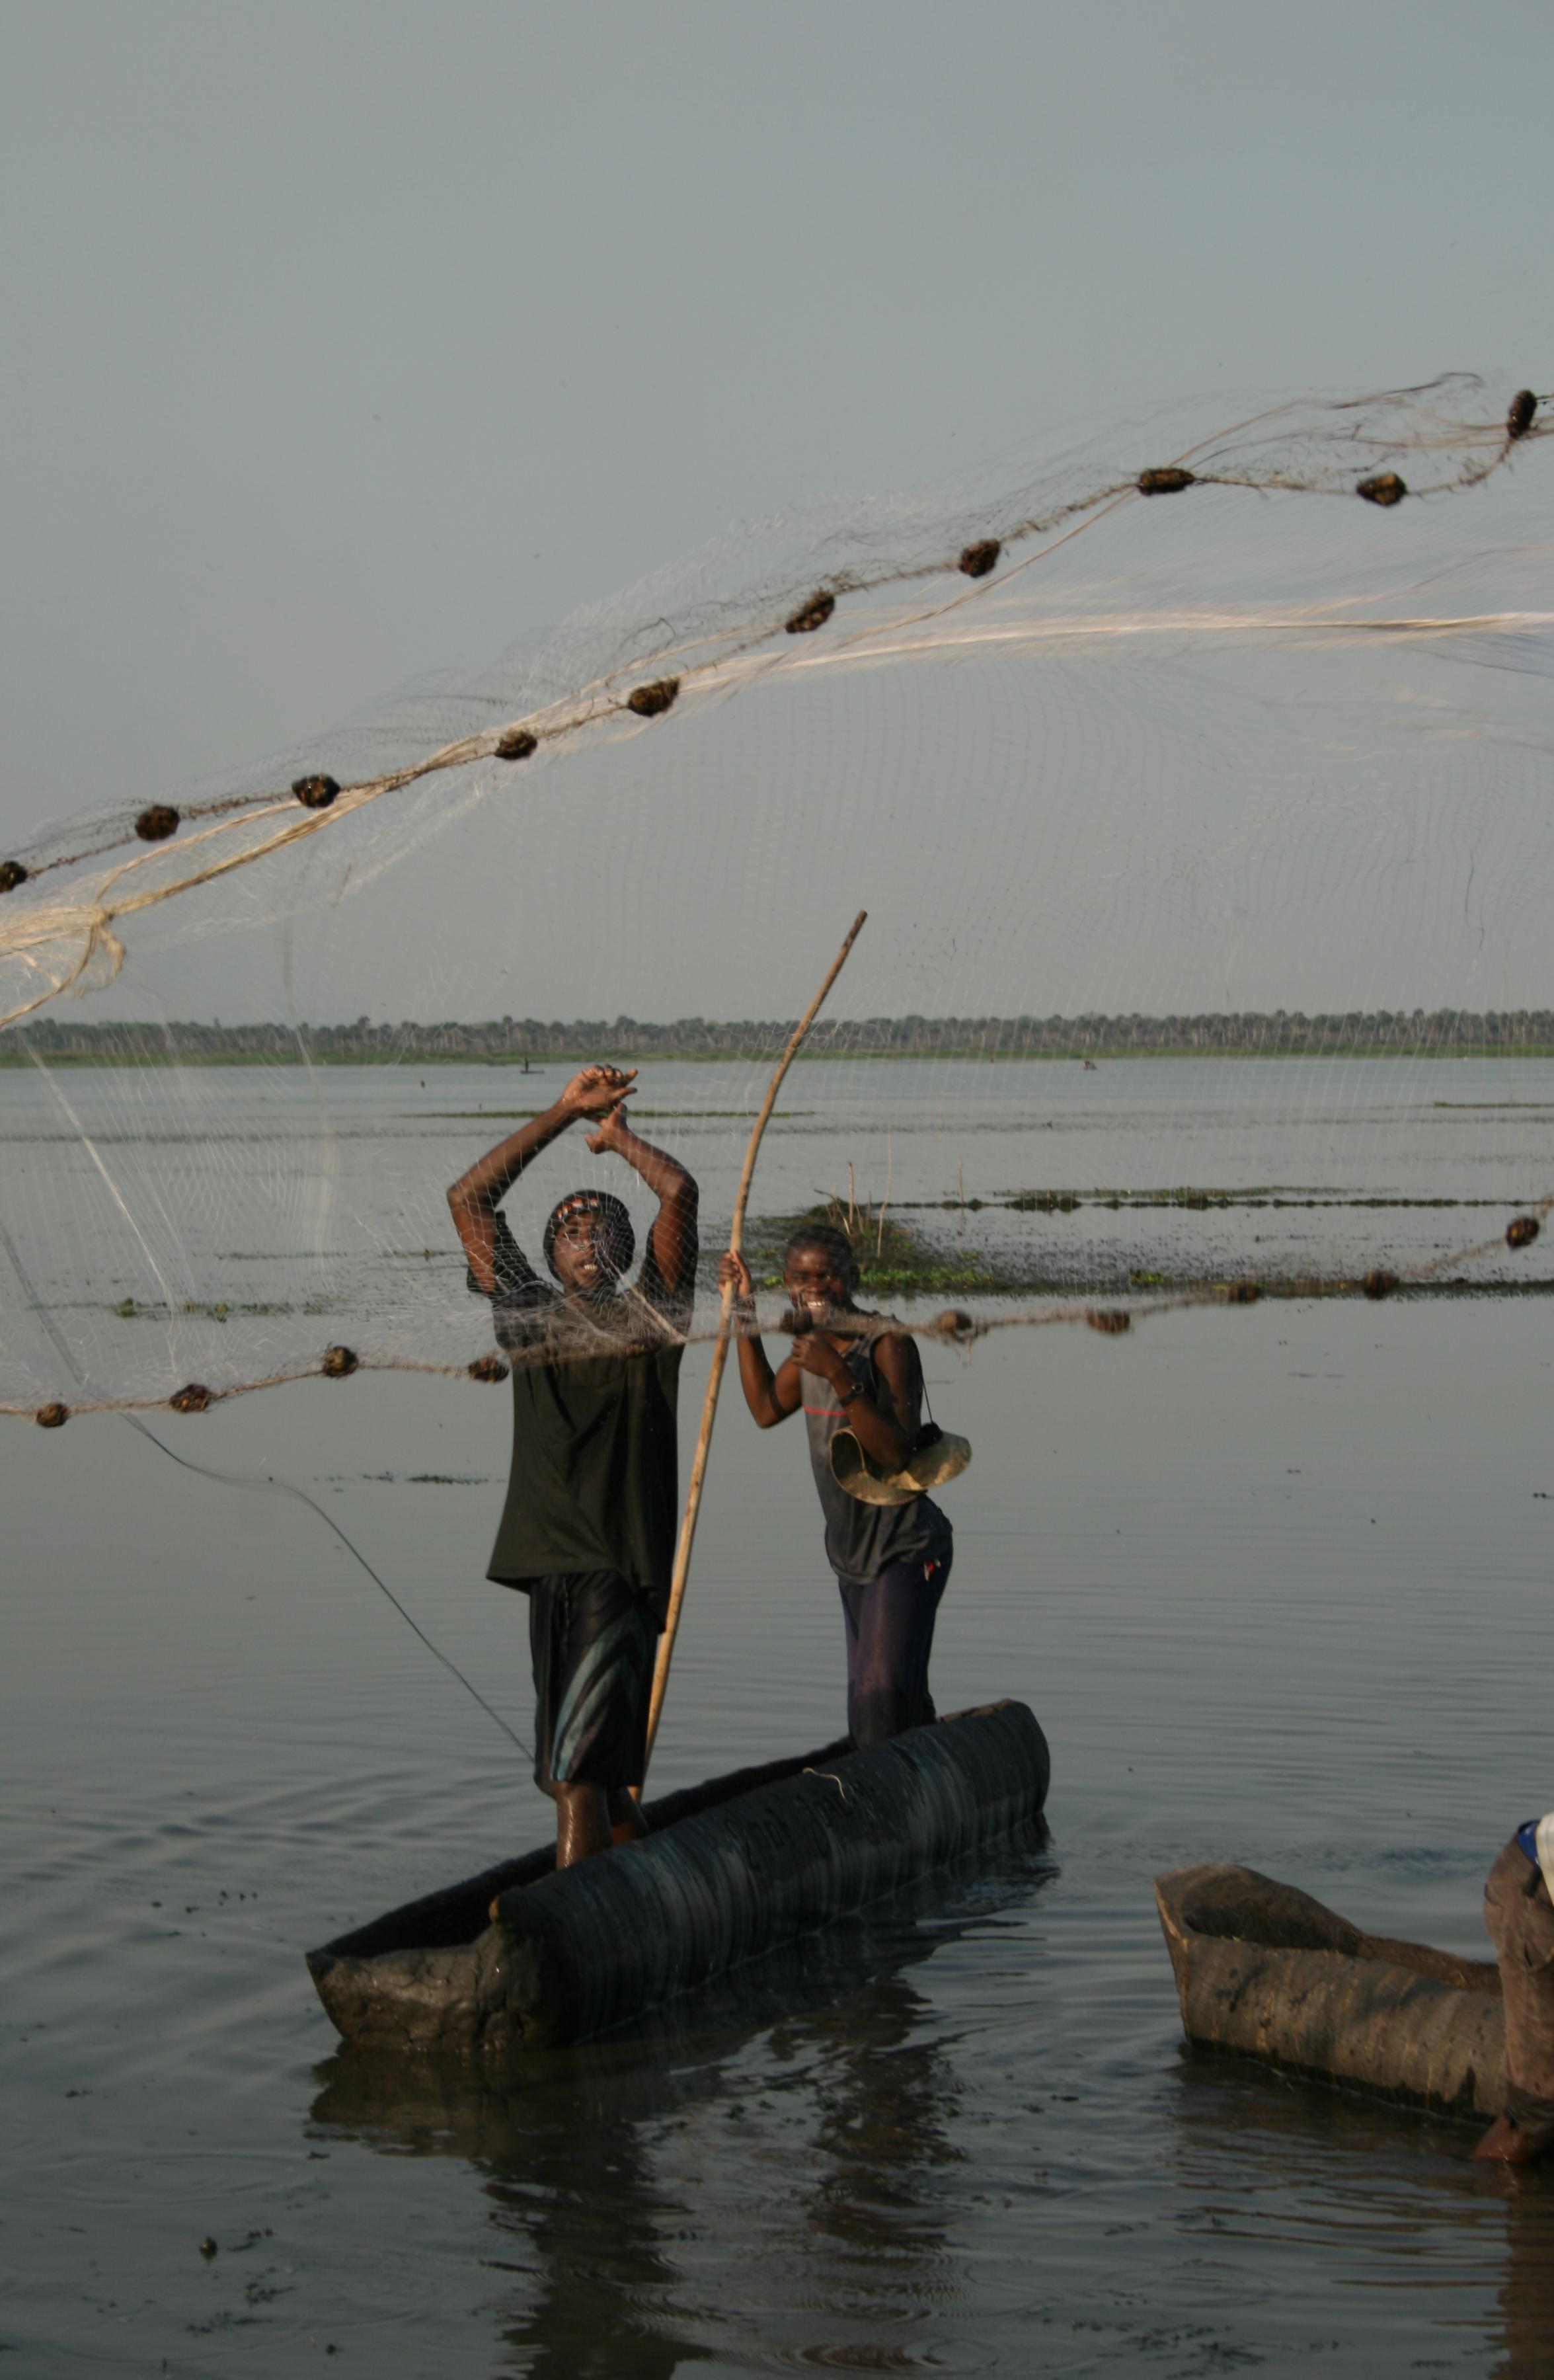 Fishermen near Mopeia in Mozambique's Zambezi river basin take a calculated risk by living next to the river. Flooding occurs almost annually now but fishing is their only way of making a living.